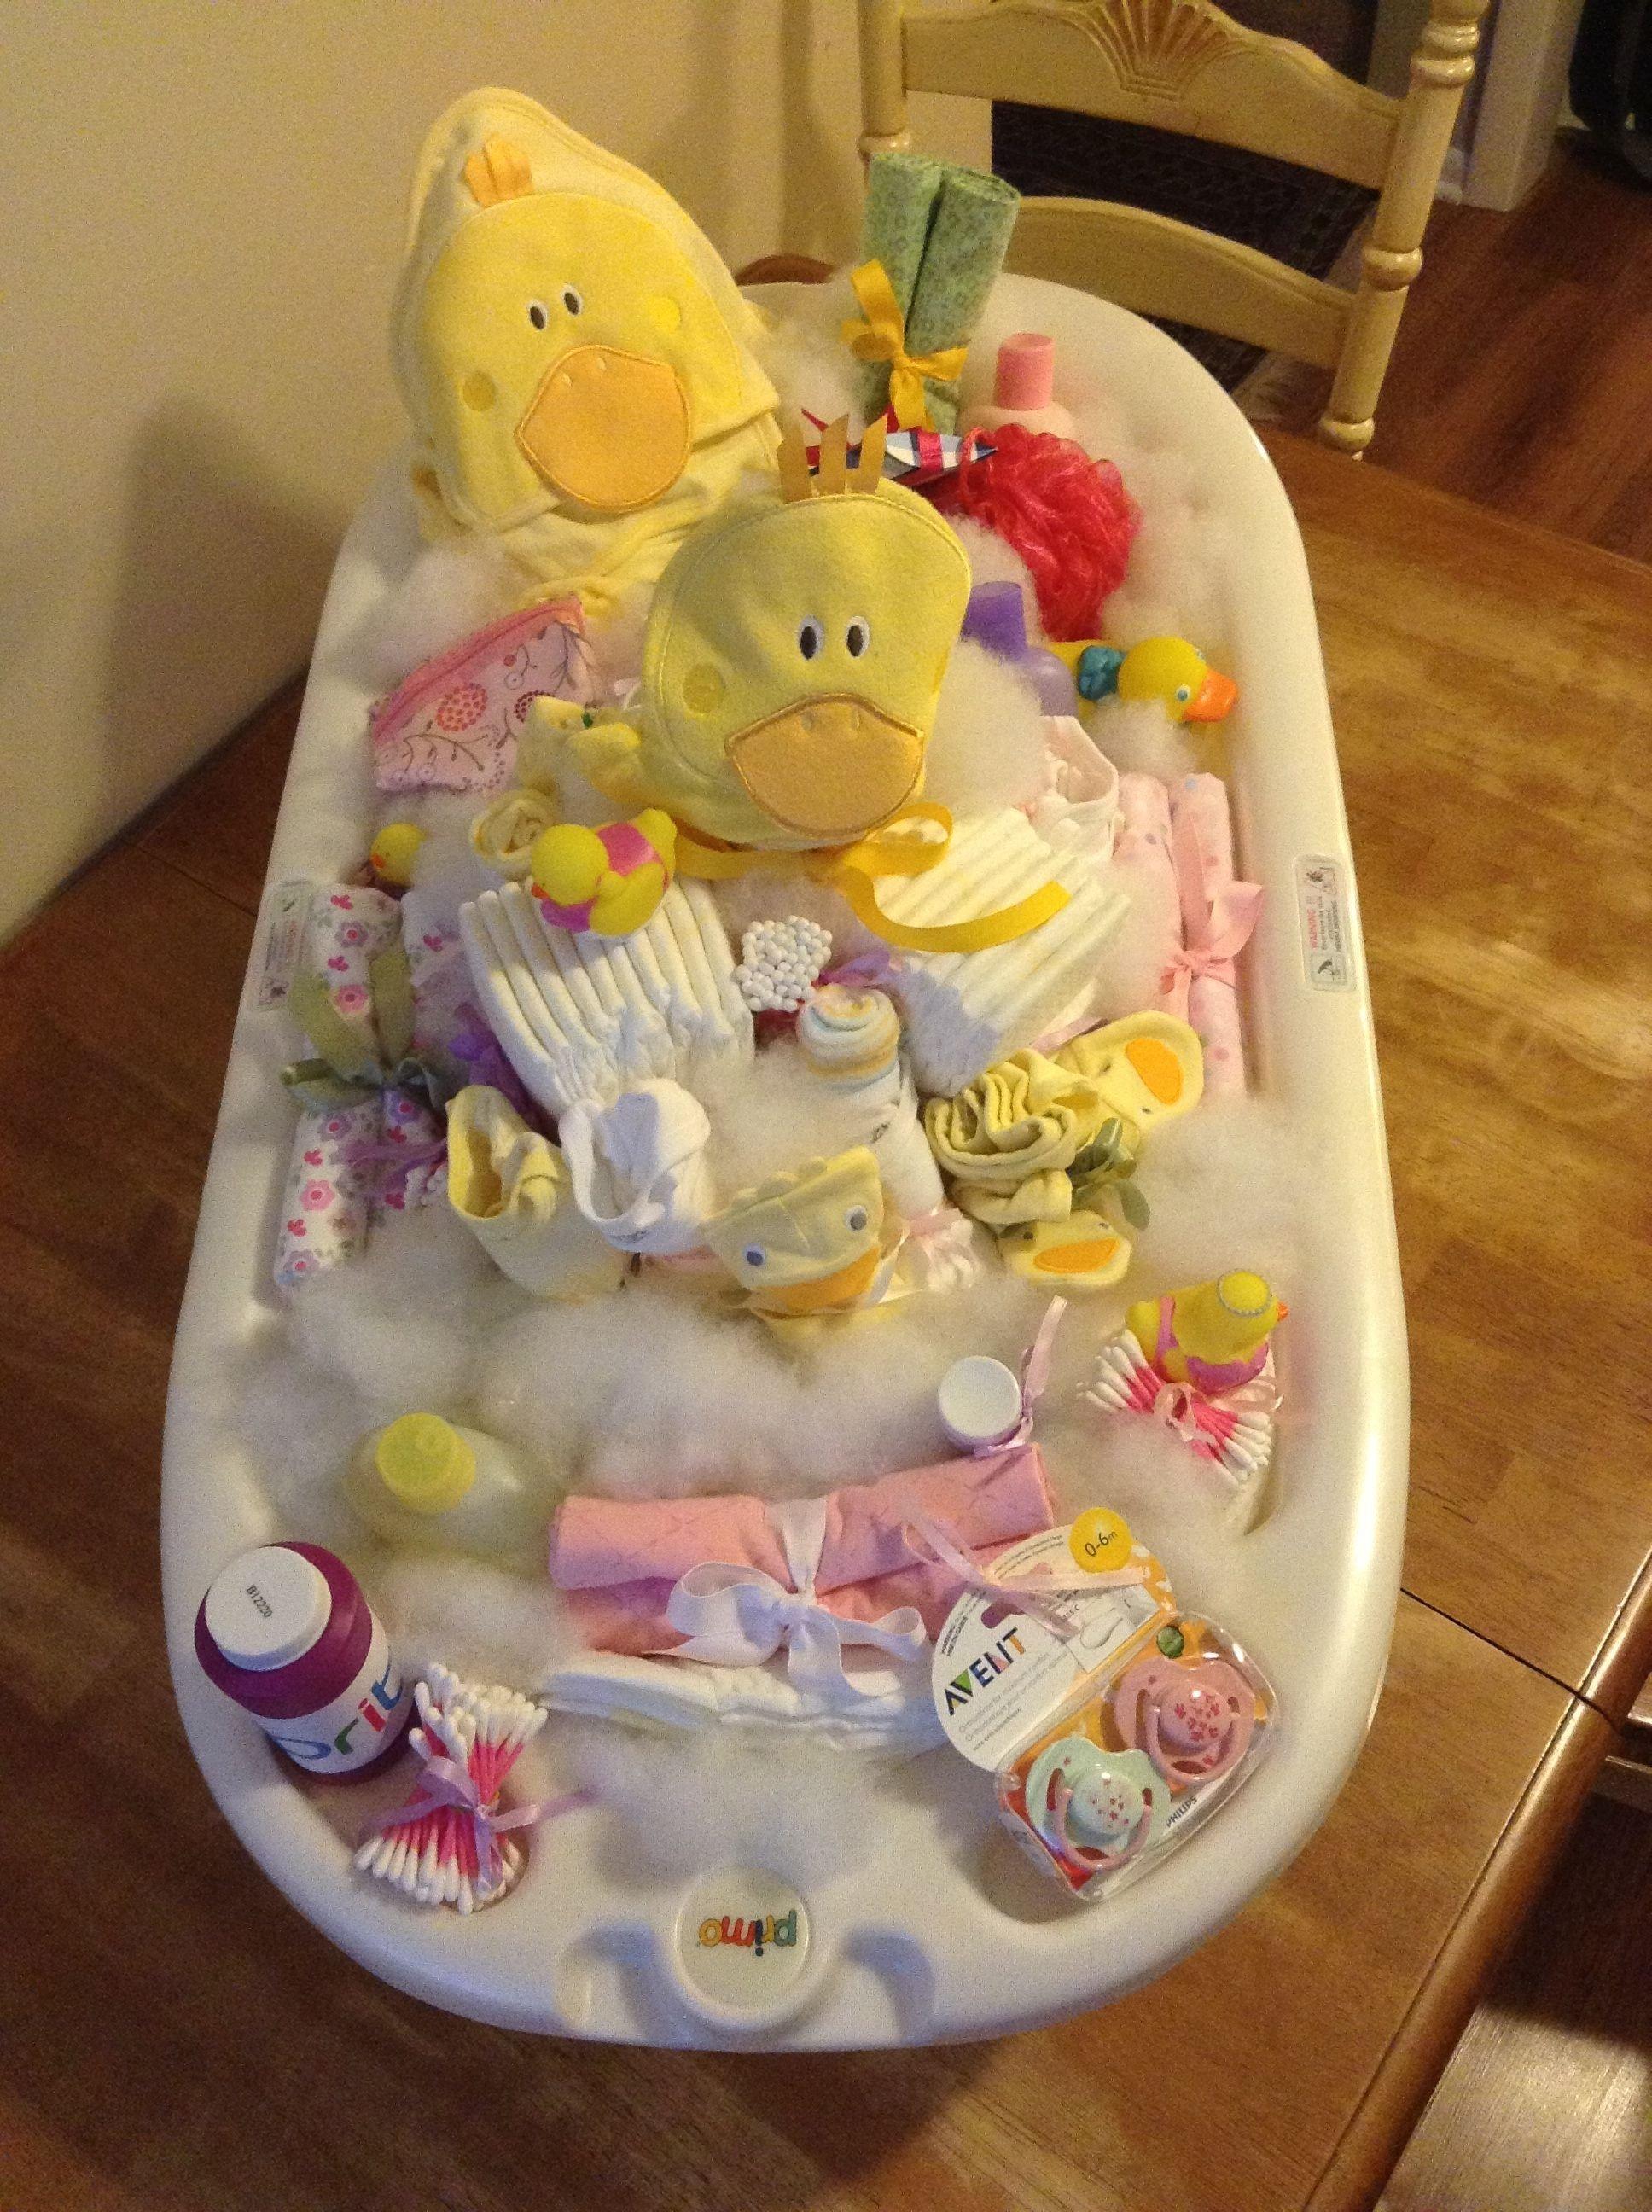 10 Amazing Diy Baby Shower Gift Ideas sweet baby shower gift the base of the tub is filled with diapers 3 2020